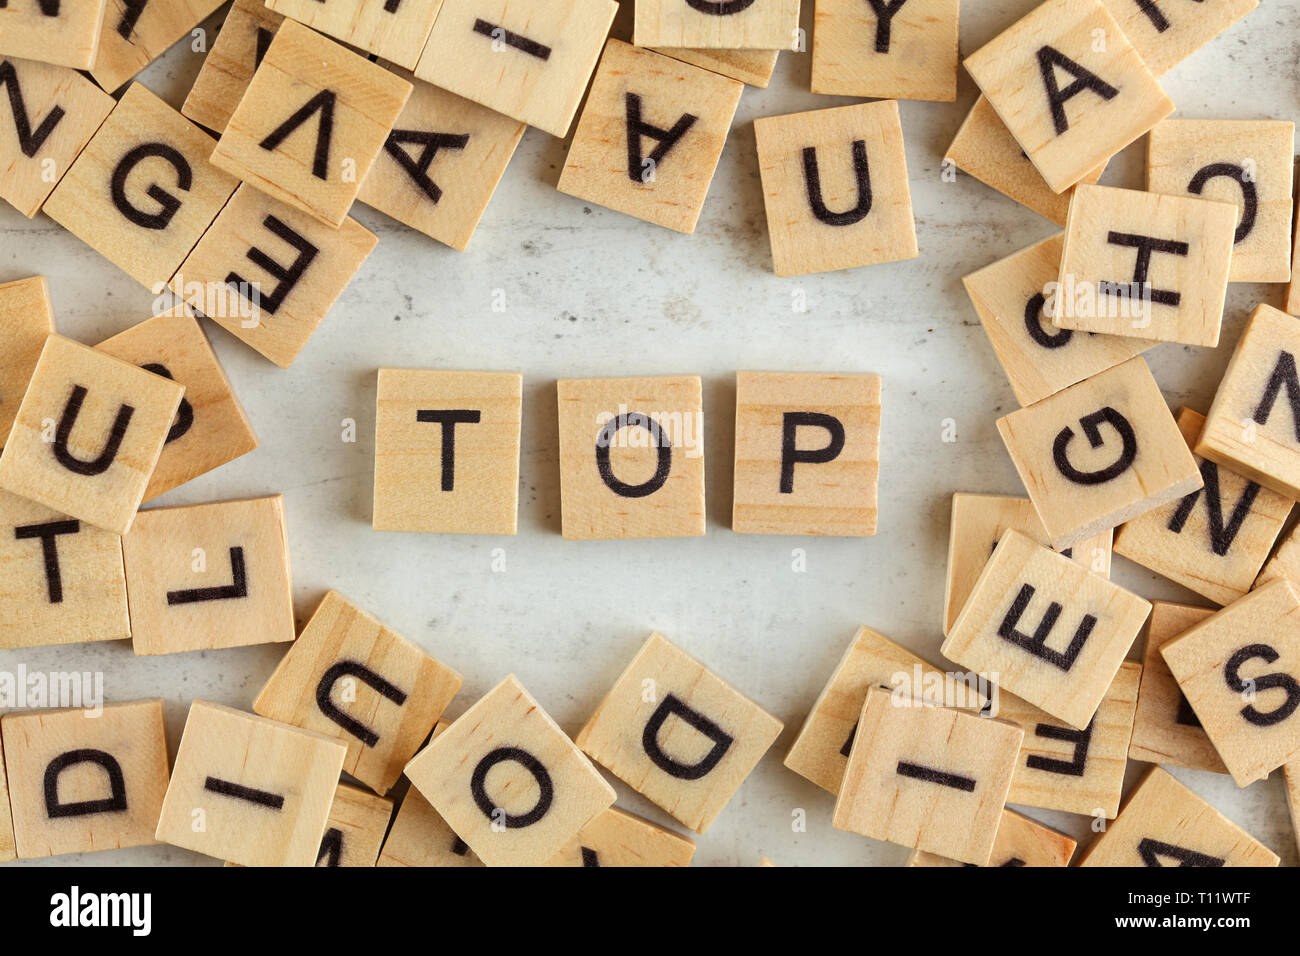 Top down view, pile of square wooden blocks with word TOP on